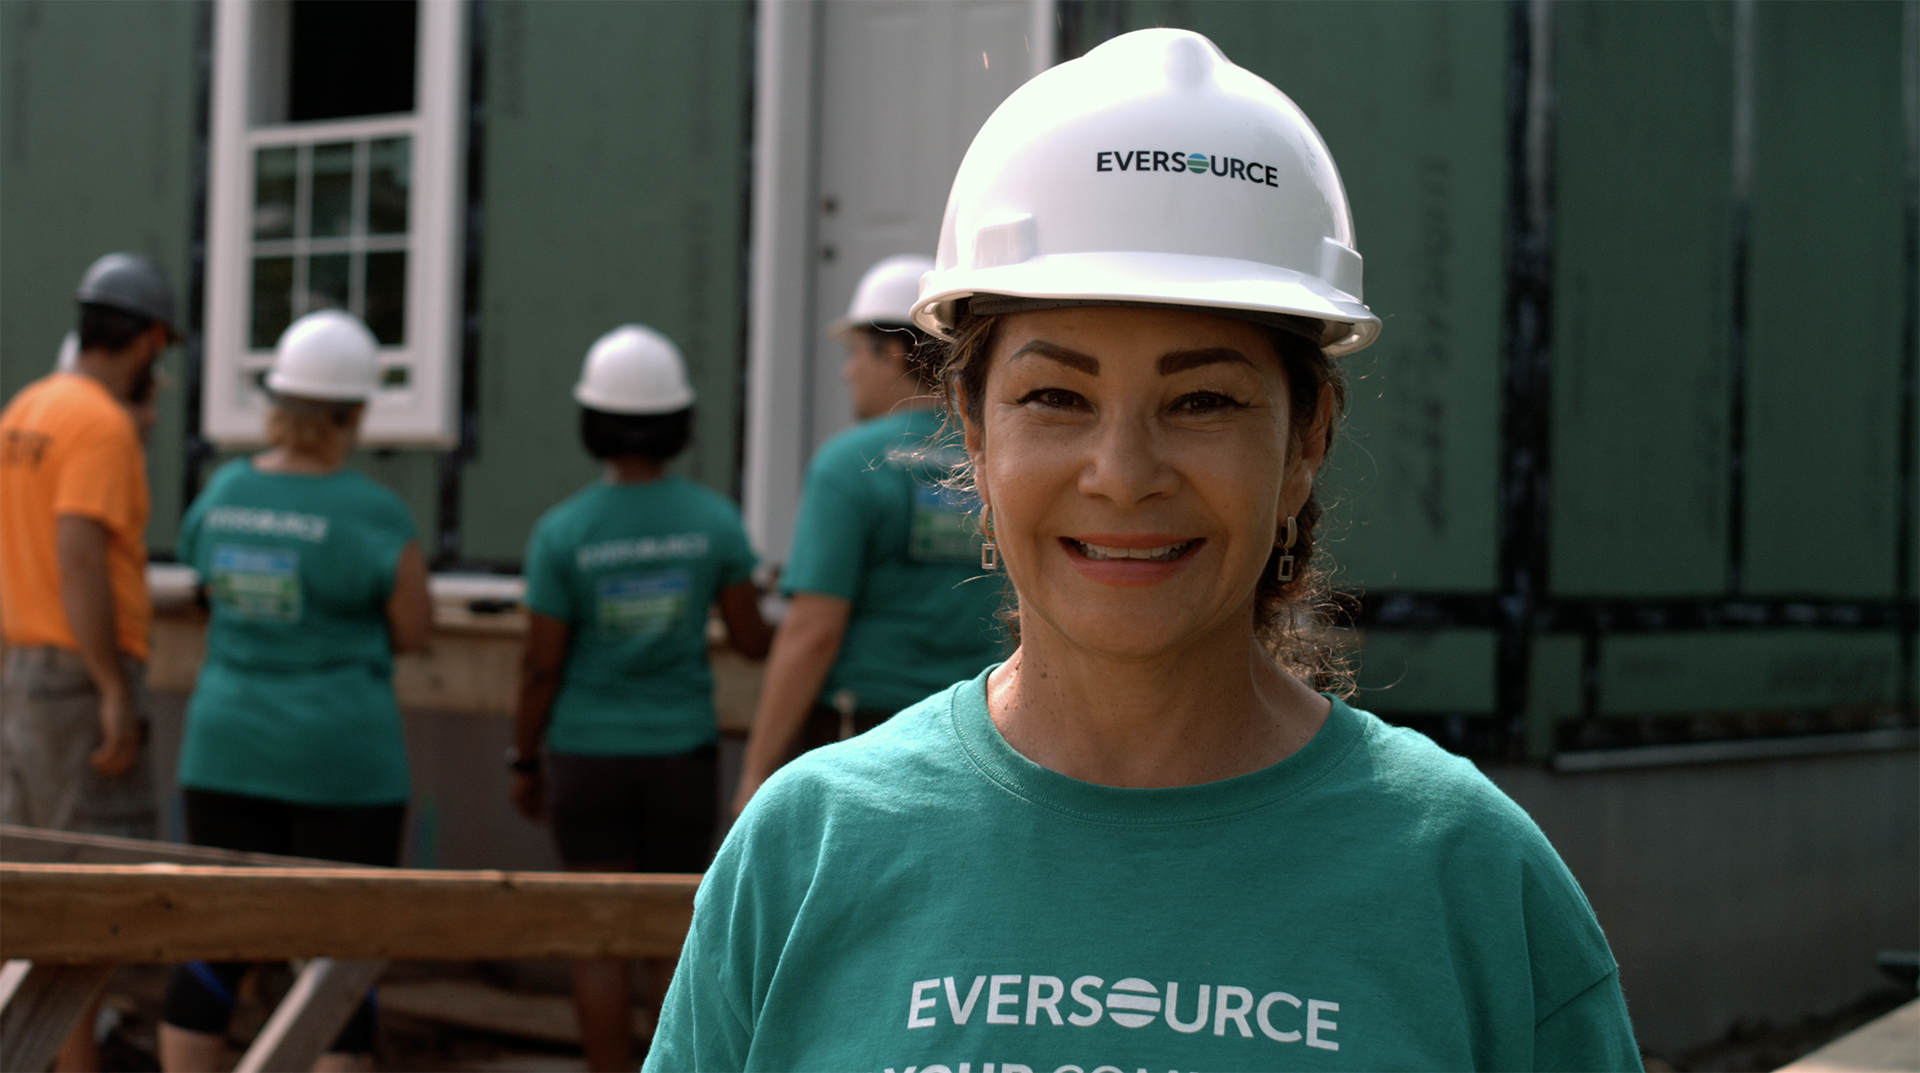 Eversource Habitat 4 Humanity